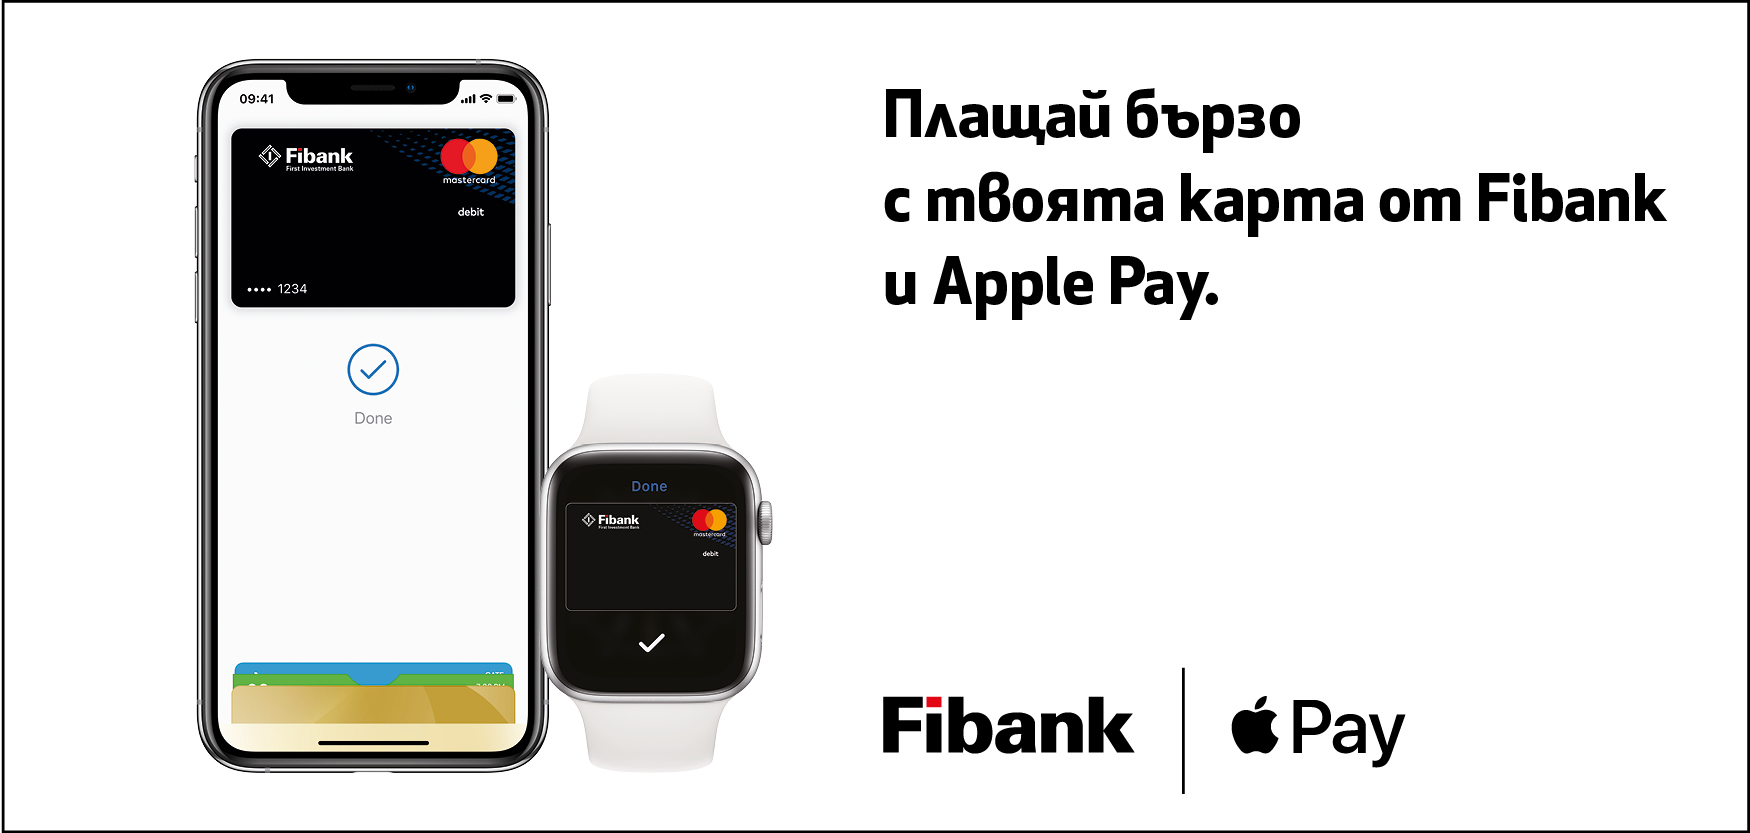 Apple Pay and Fibank